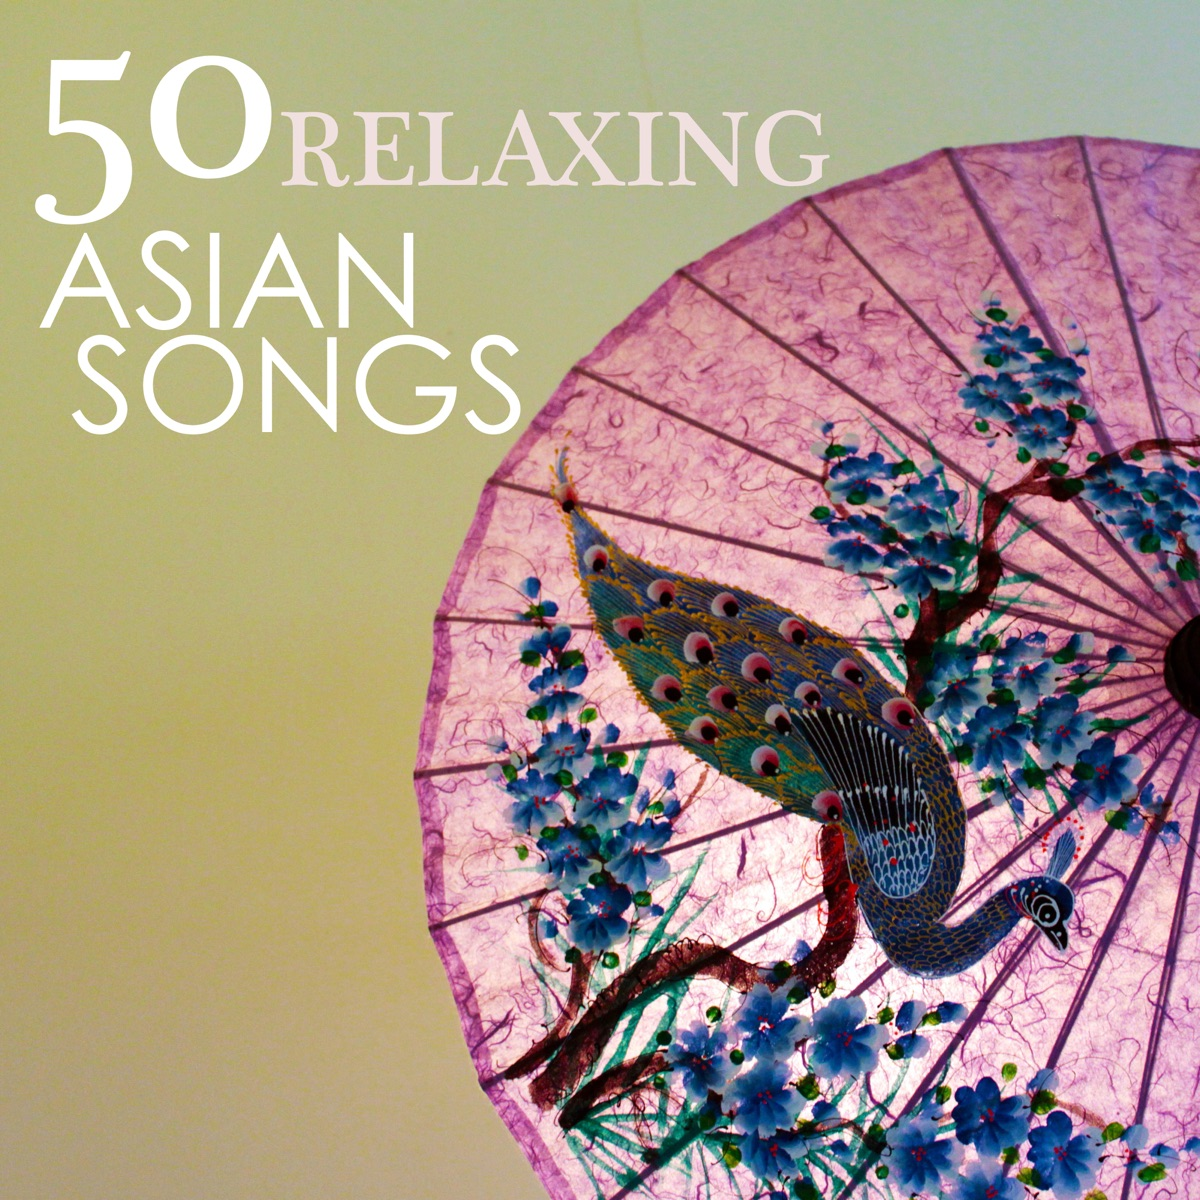 50 Relaxing Asian Songs - Hang Drum, Sitar, Gu Zheng, Koto